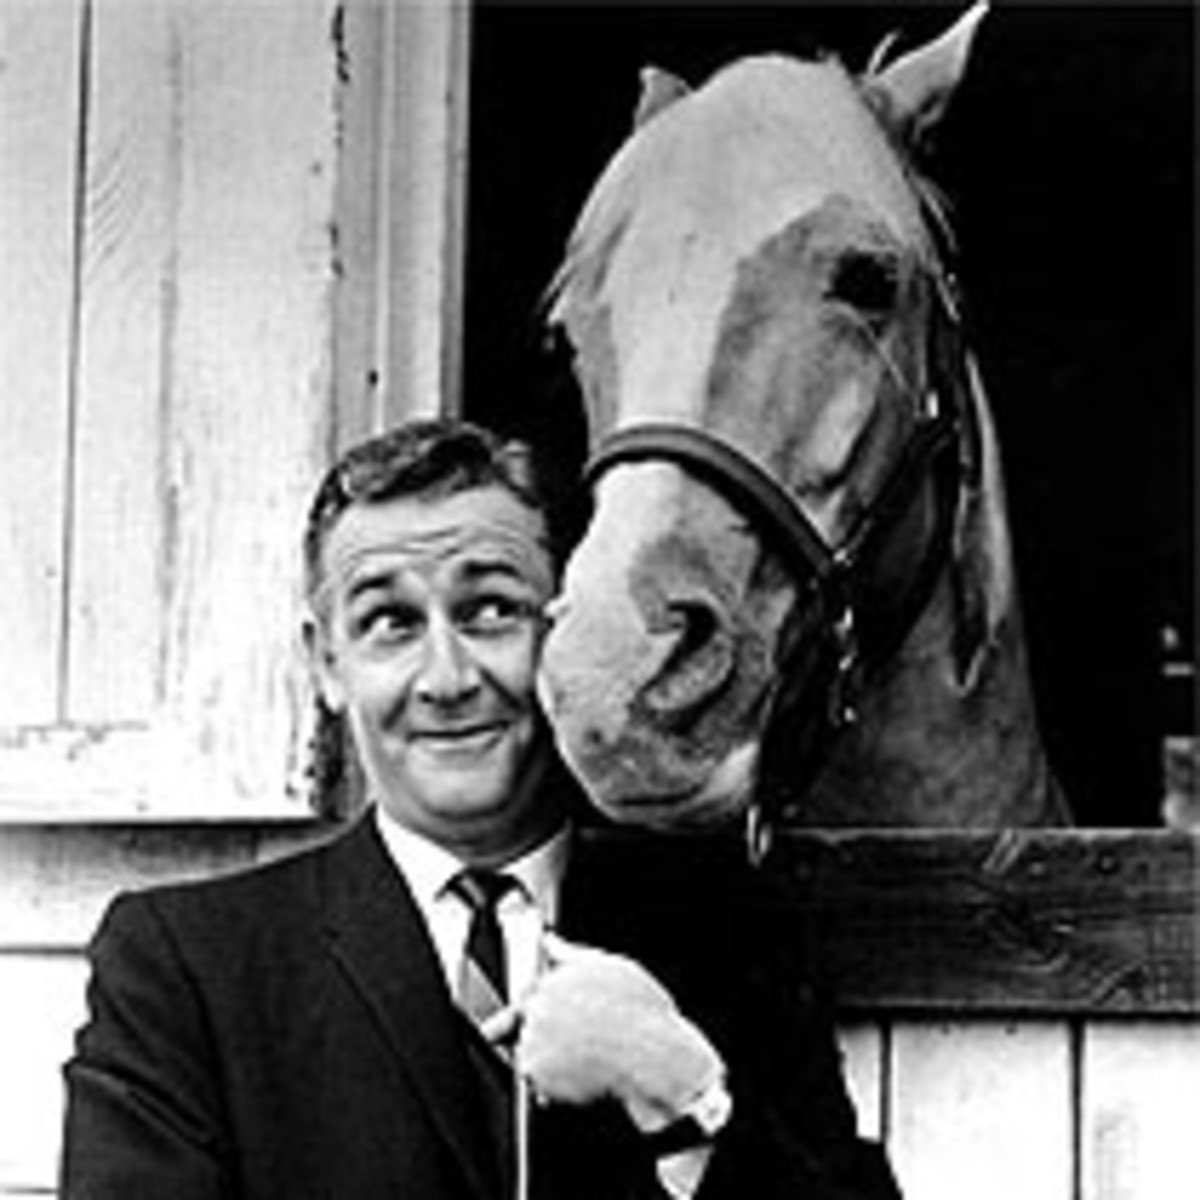 Interview with Mr. Ed - Horse Facts and Horse Trivia